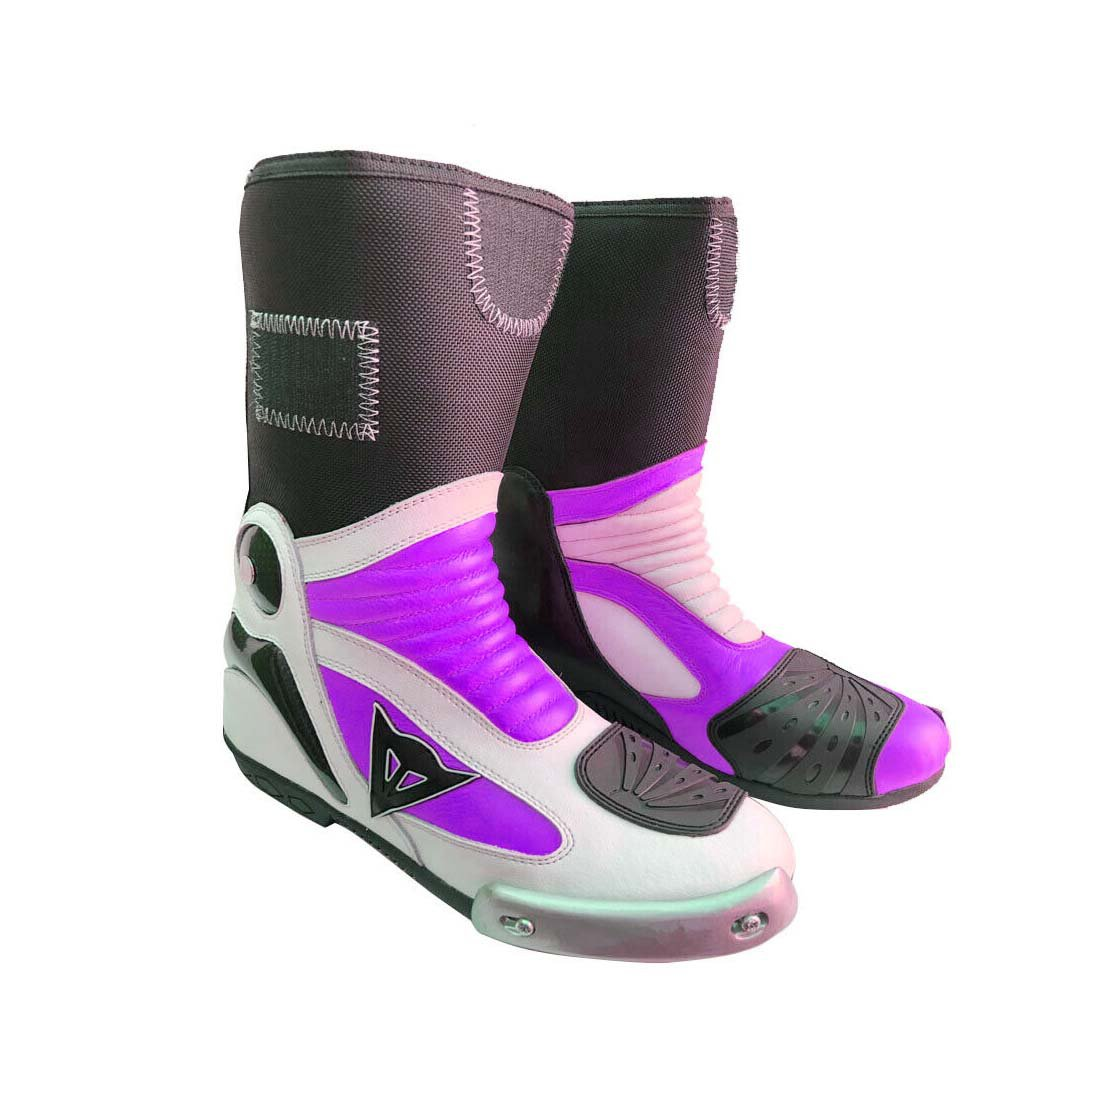 UNISEX MOTORBIKE MOTORCYCLE RACING LEATHER SHOES PURPLE AND WHITE COLOURE SIZE USA 6